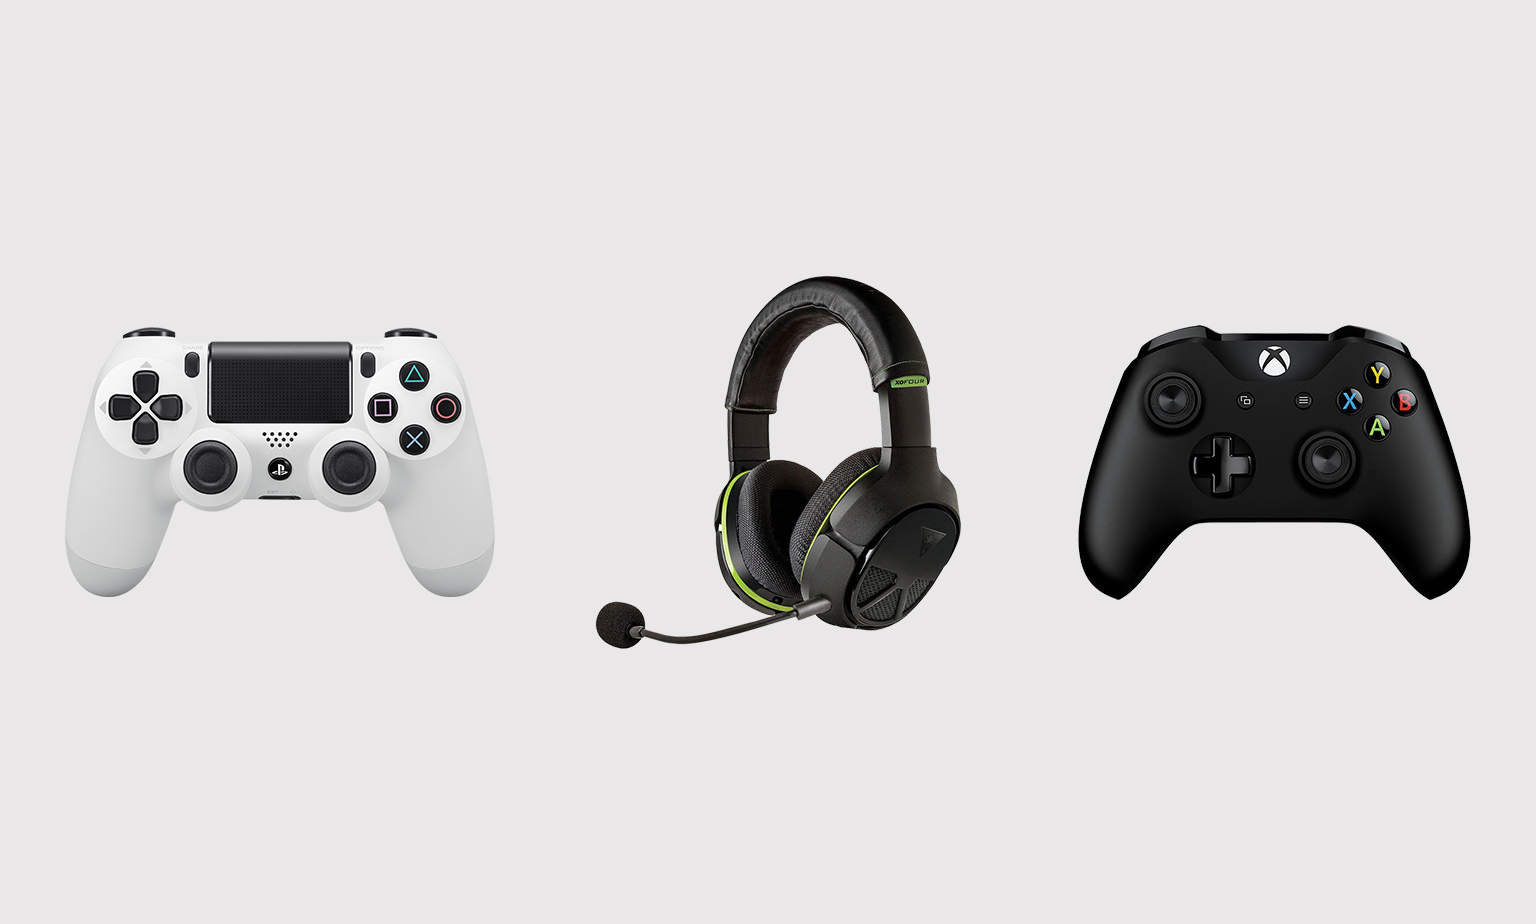 Save up to 30% on Video Game Accessories